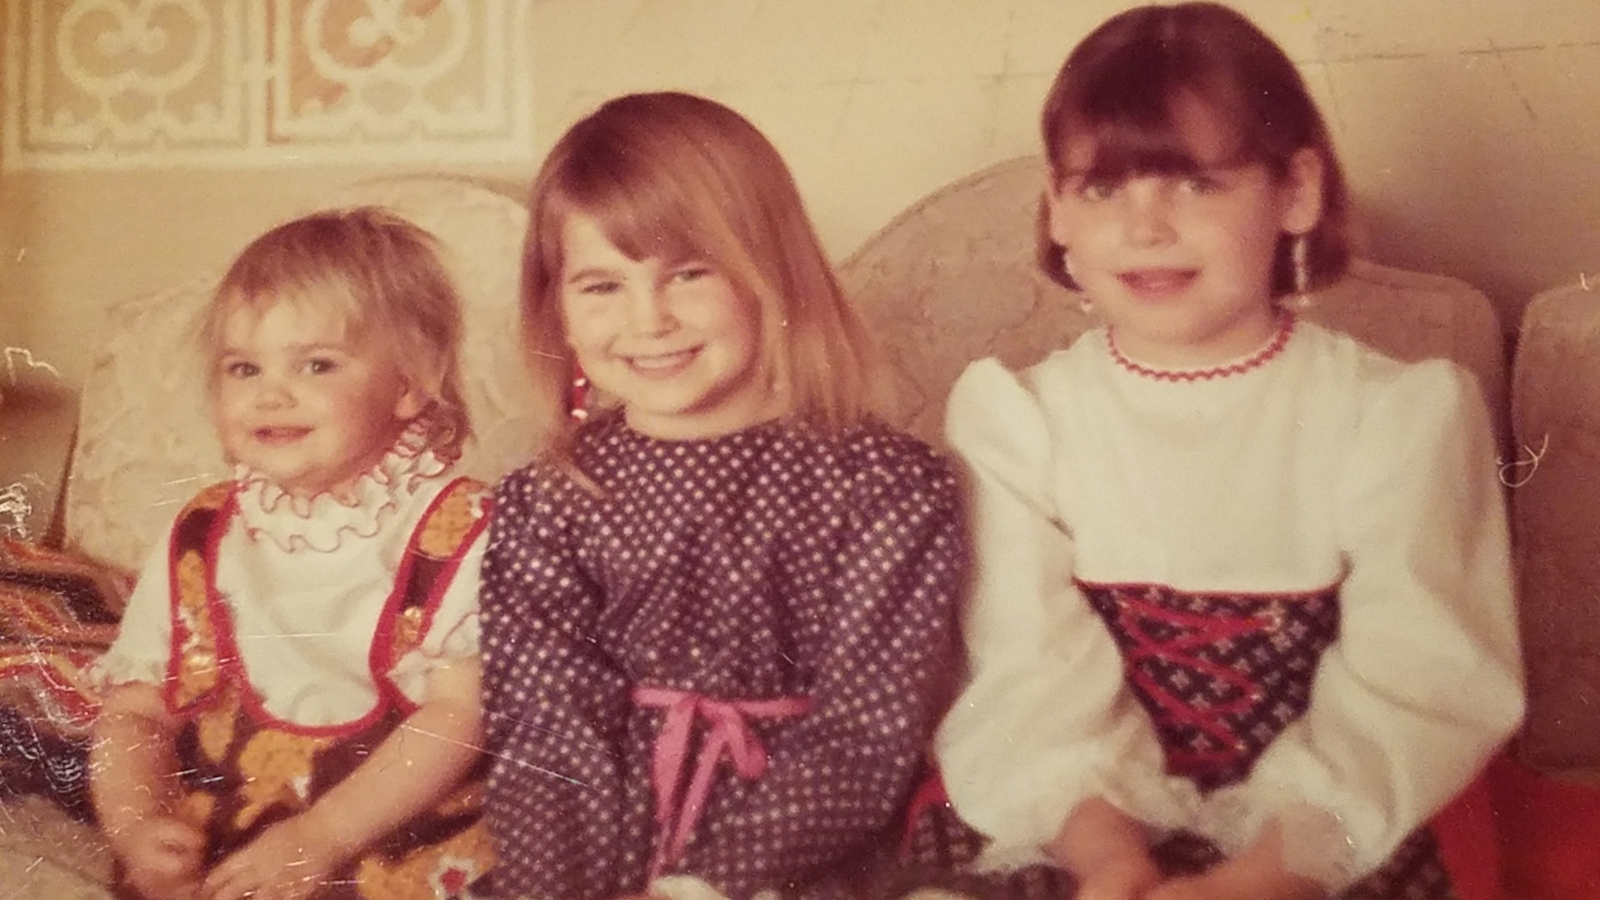 Kerry, Missy and Julie... 1973 ish